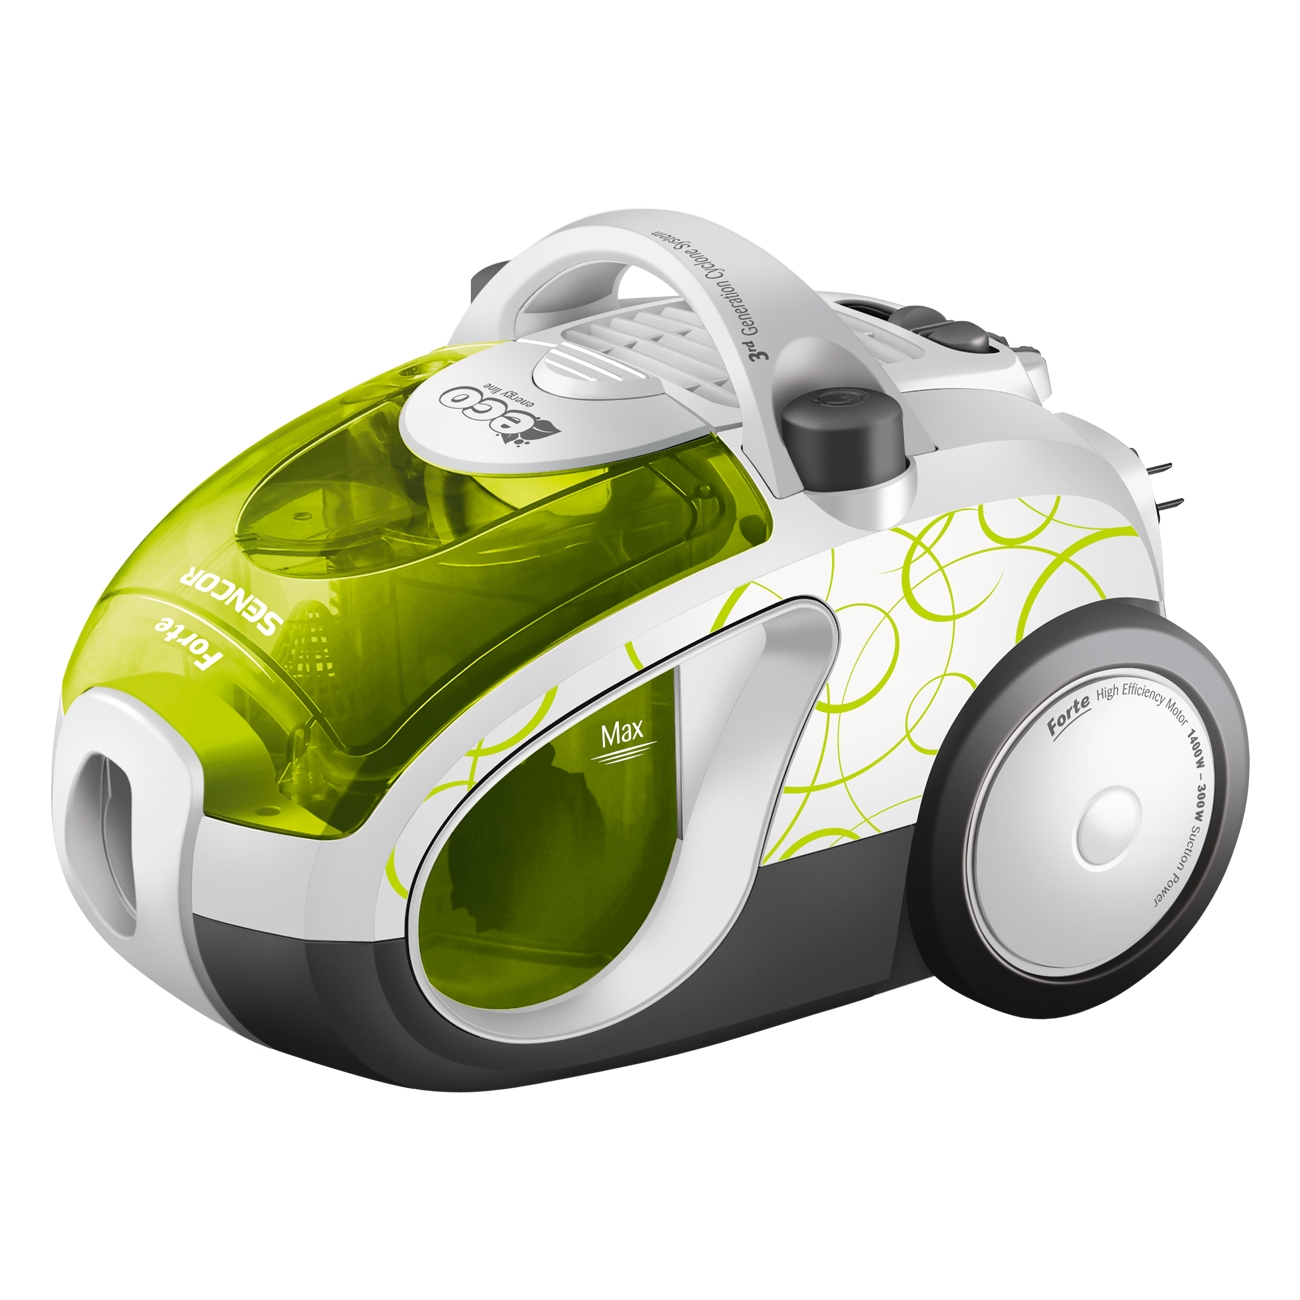 Bagless cleaner svc gr. Dust clipart vacuum